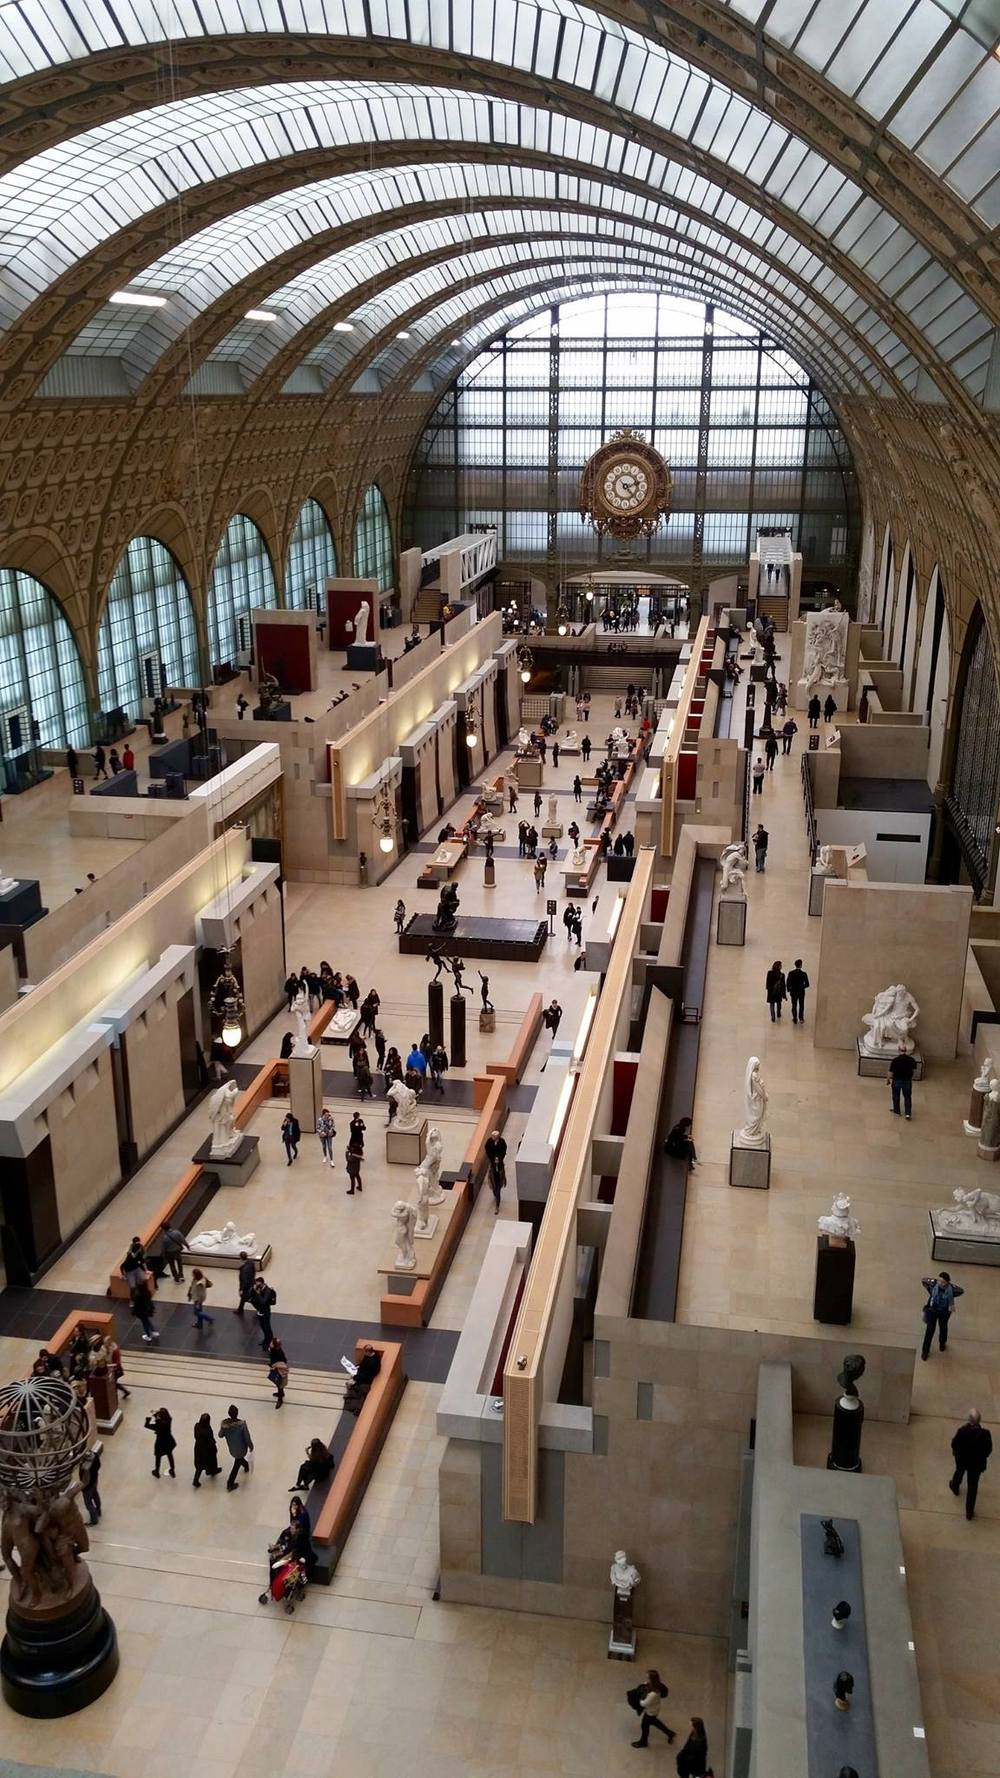 The Orsay Museum. Only 4 floors of art, but probably room for at least 4 more. I'm glad they kept the space open to the natural light and exposed the feel that the train station used to have.